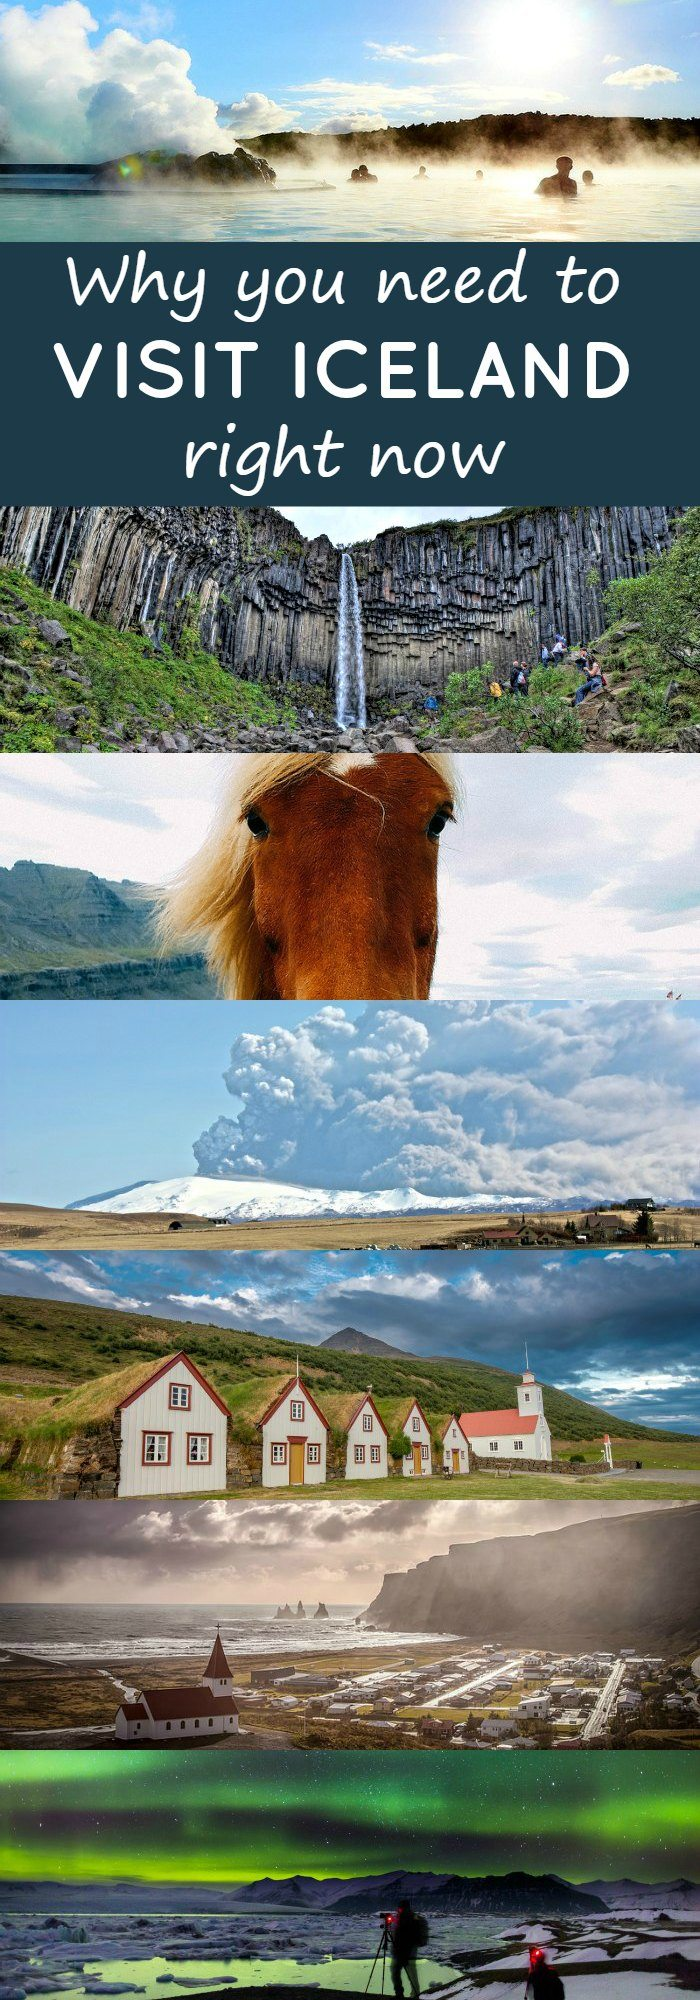 Why you need to visit Iceland right now